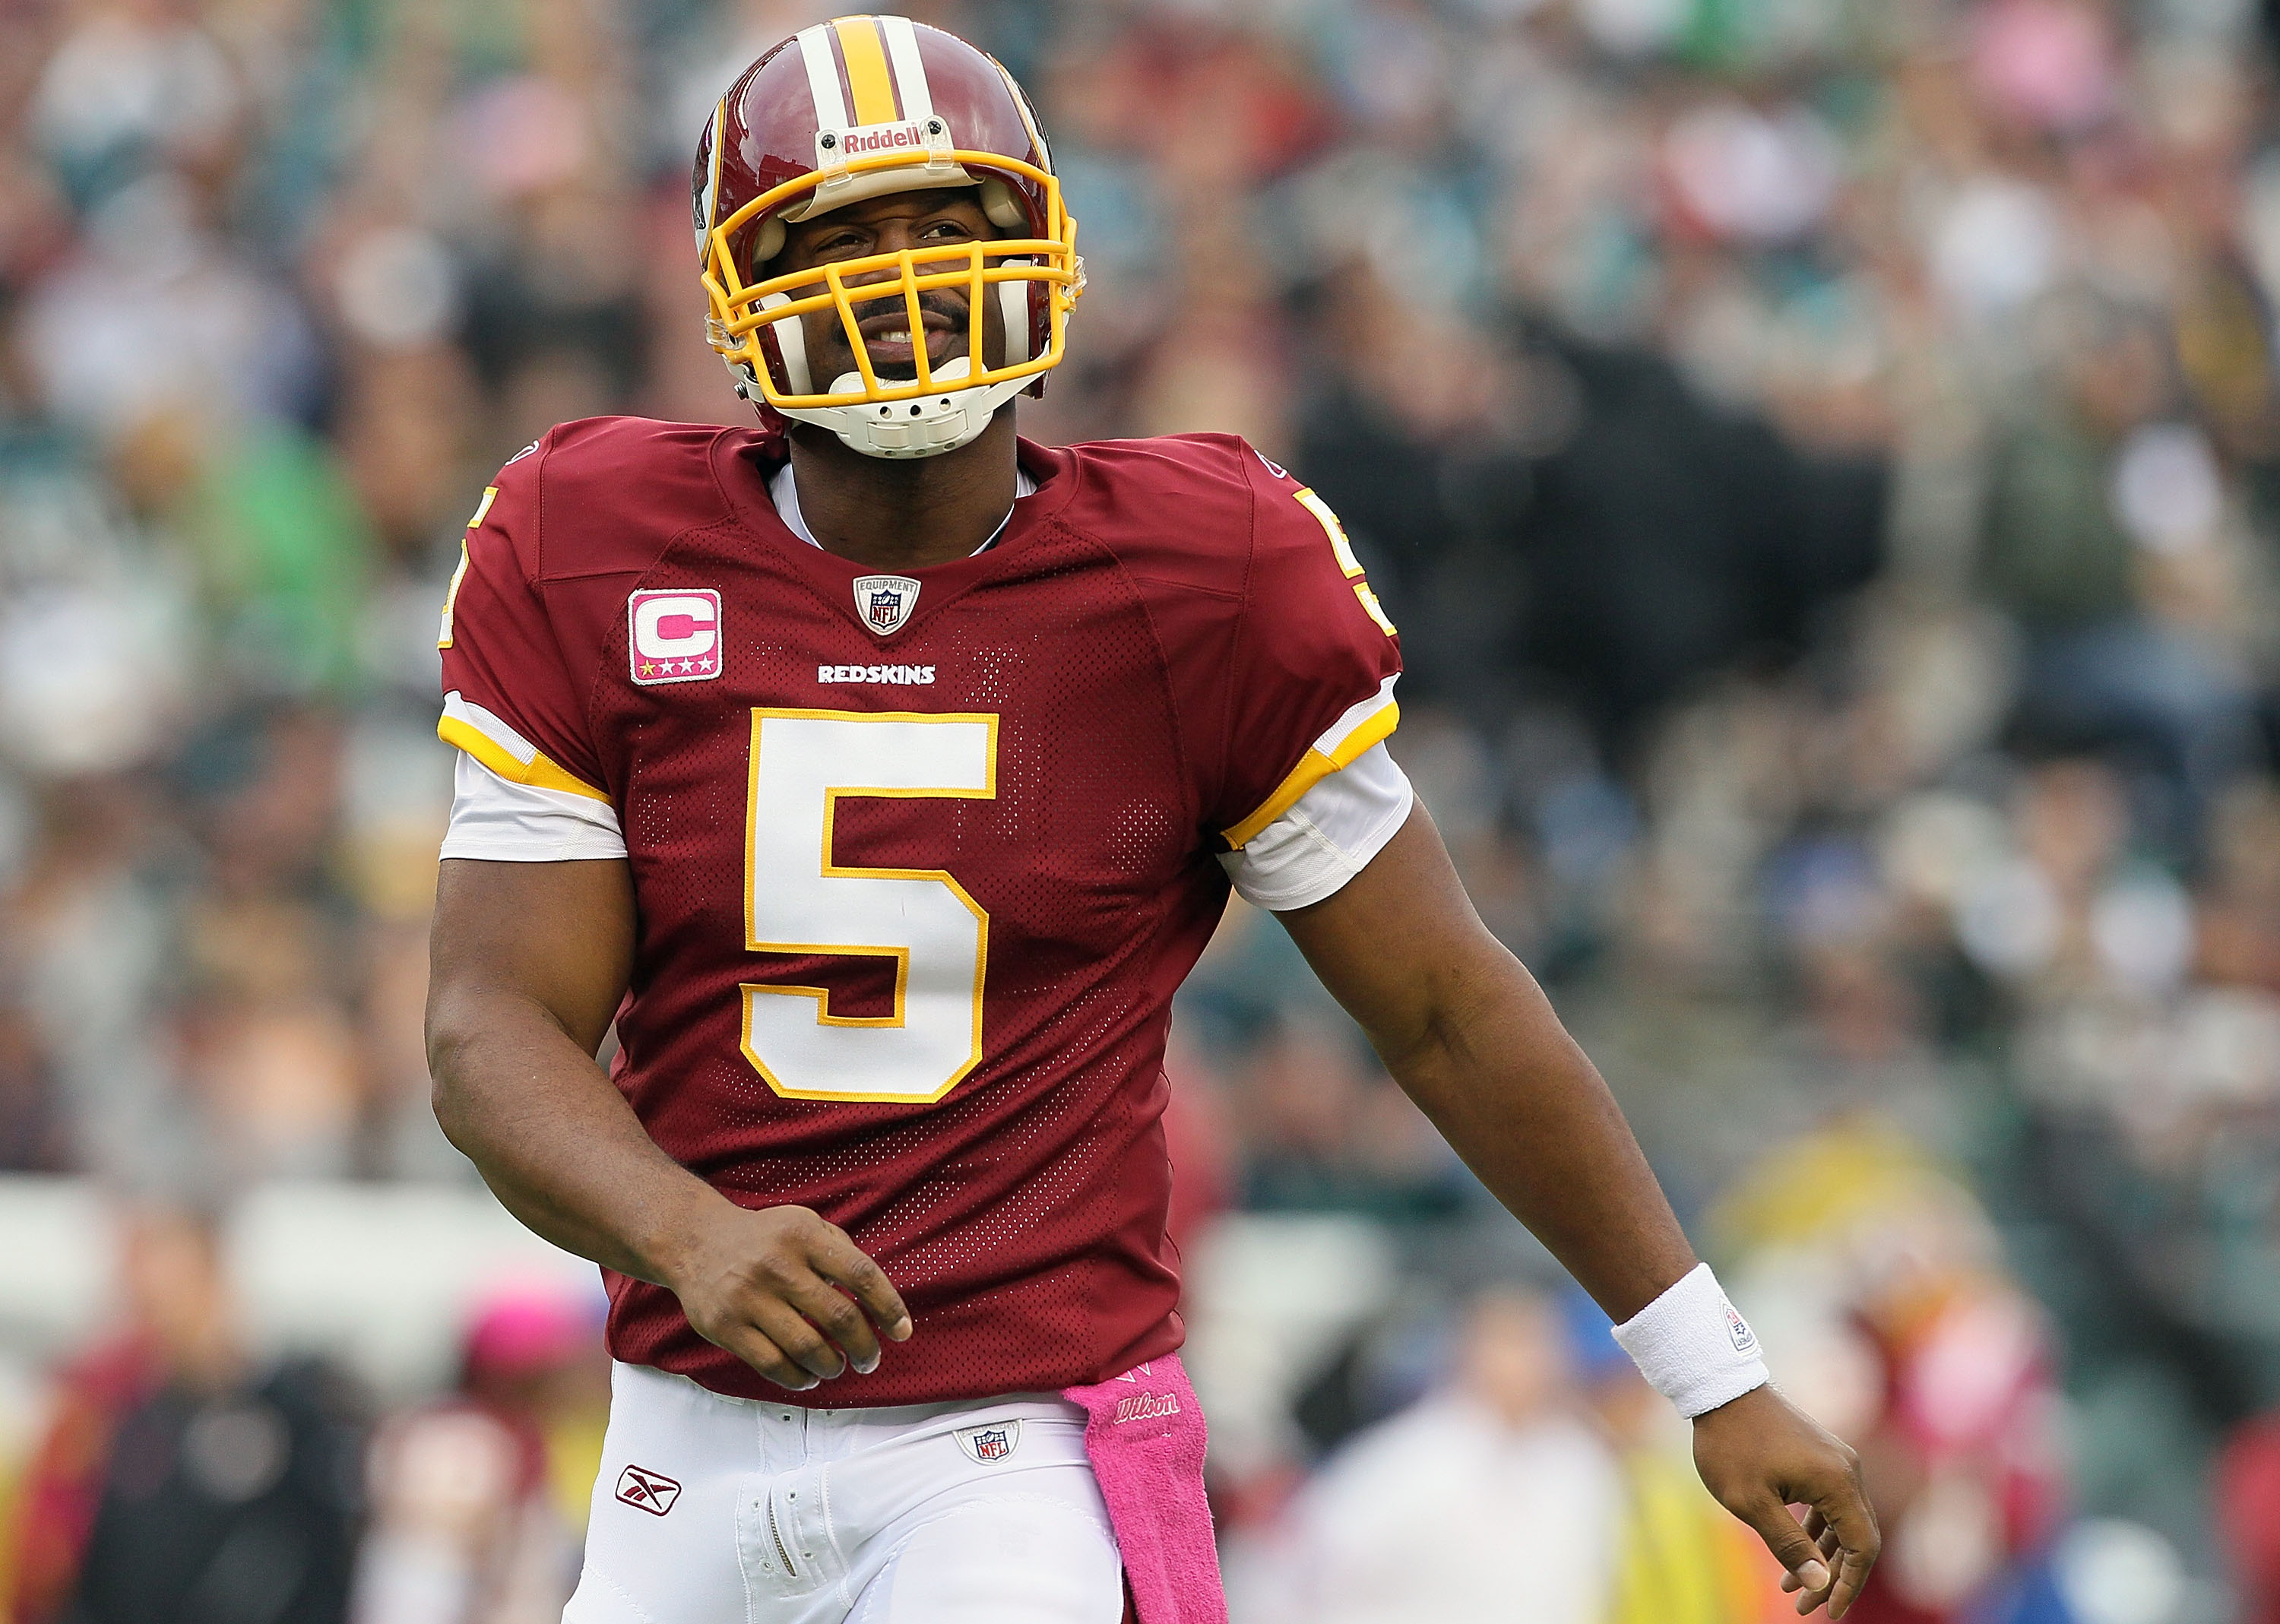 PHILADELPHIA - OCTOBER 03:  Donovan McNabb #5 of the Washington Redskins looks on against the Philadelphia Eagles on October 3, 2010 at Lincoln Financial Field in Philadelphia, Pennsylvania.  (Photo by Jim McIsaac/Getty Images)